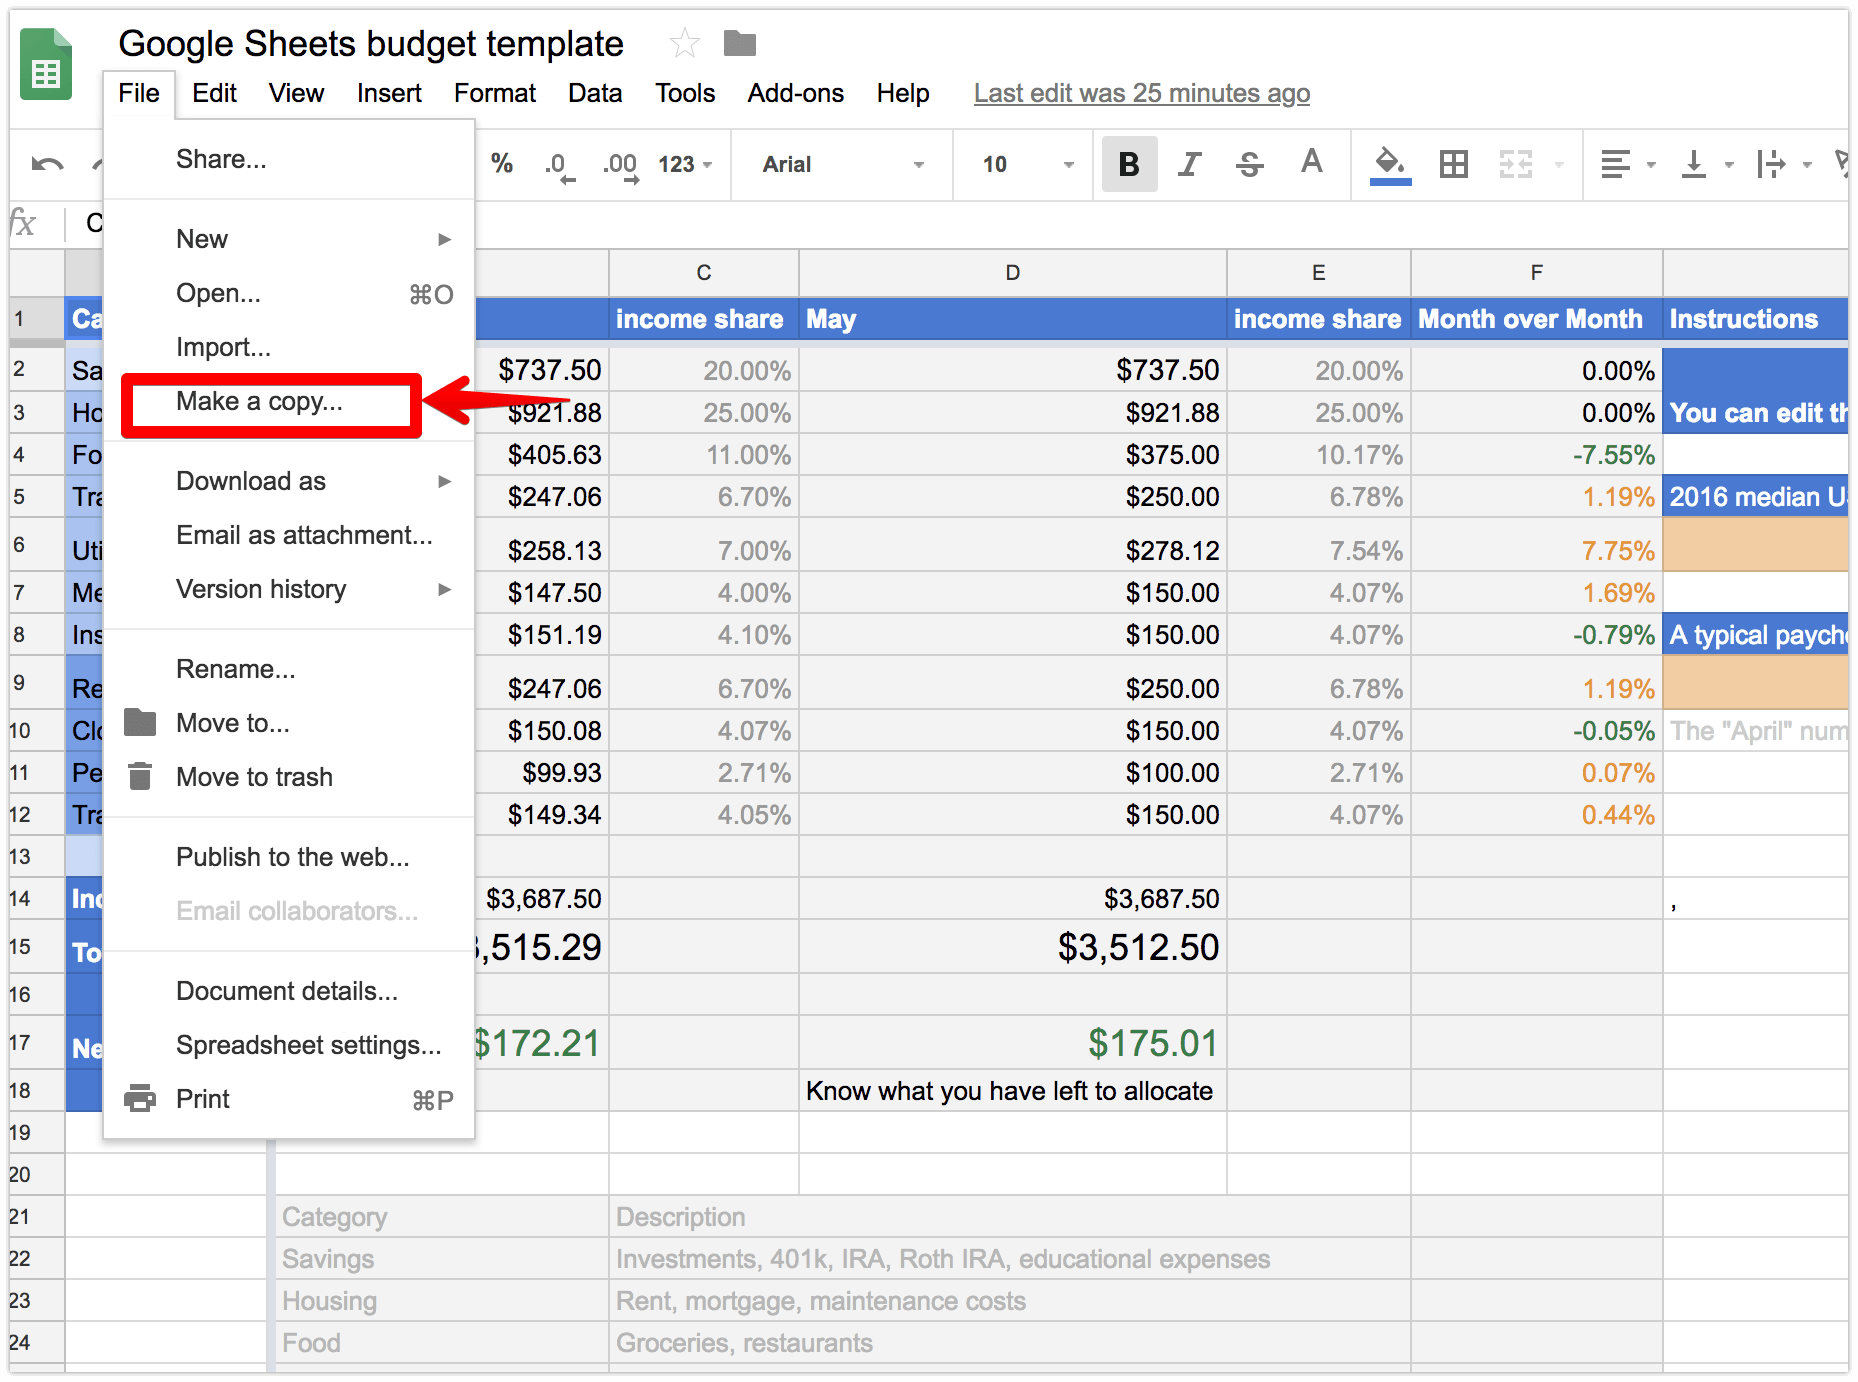 google sheets budget template keepify finance. Black Bedroom Furniture Sets. Home Design Ideas